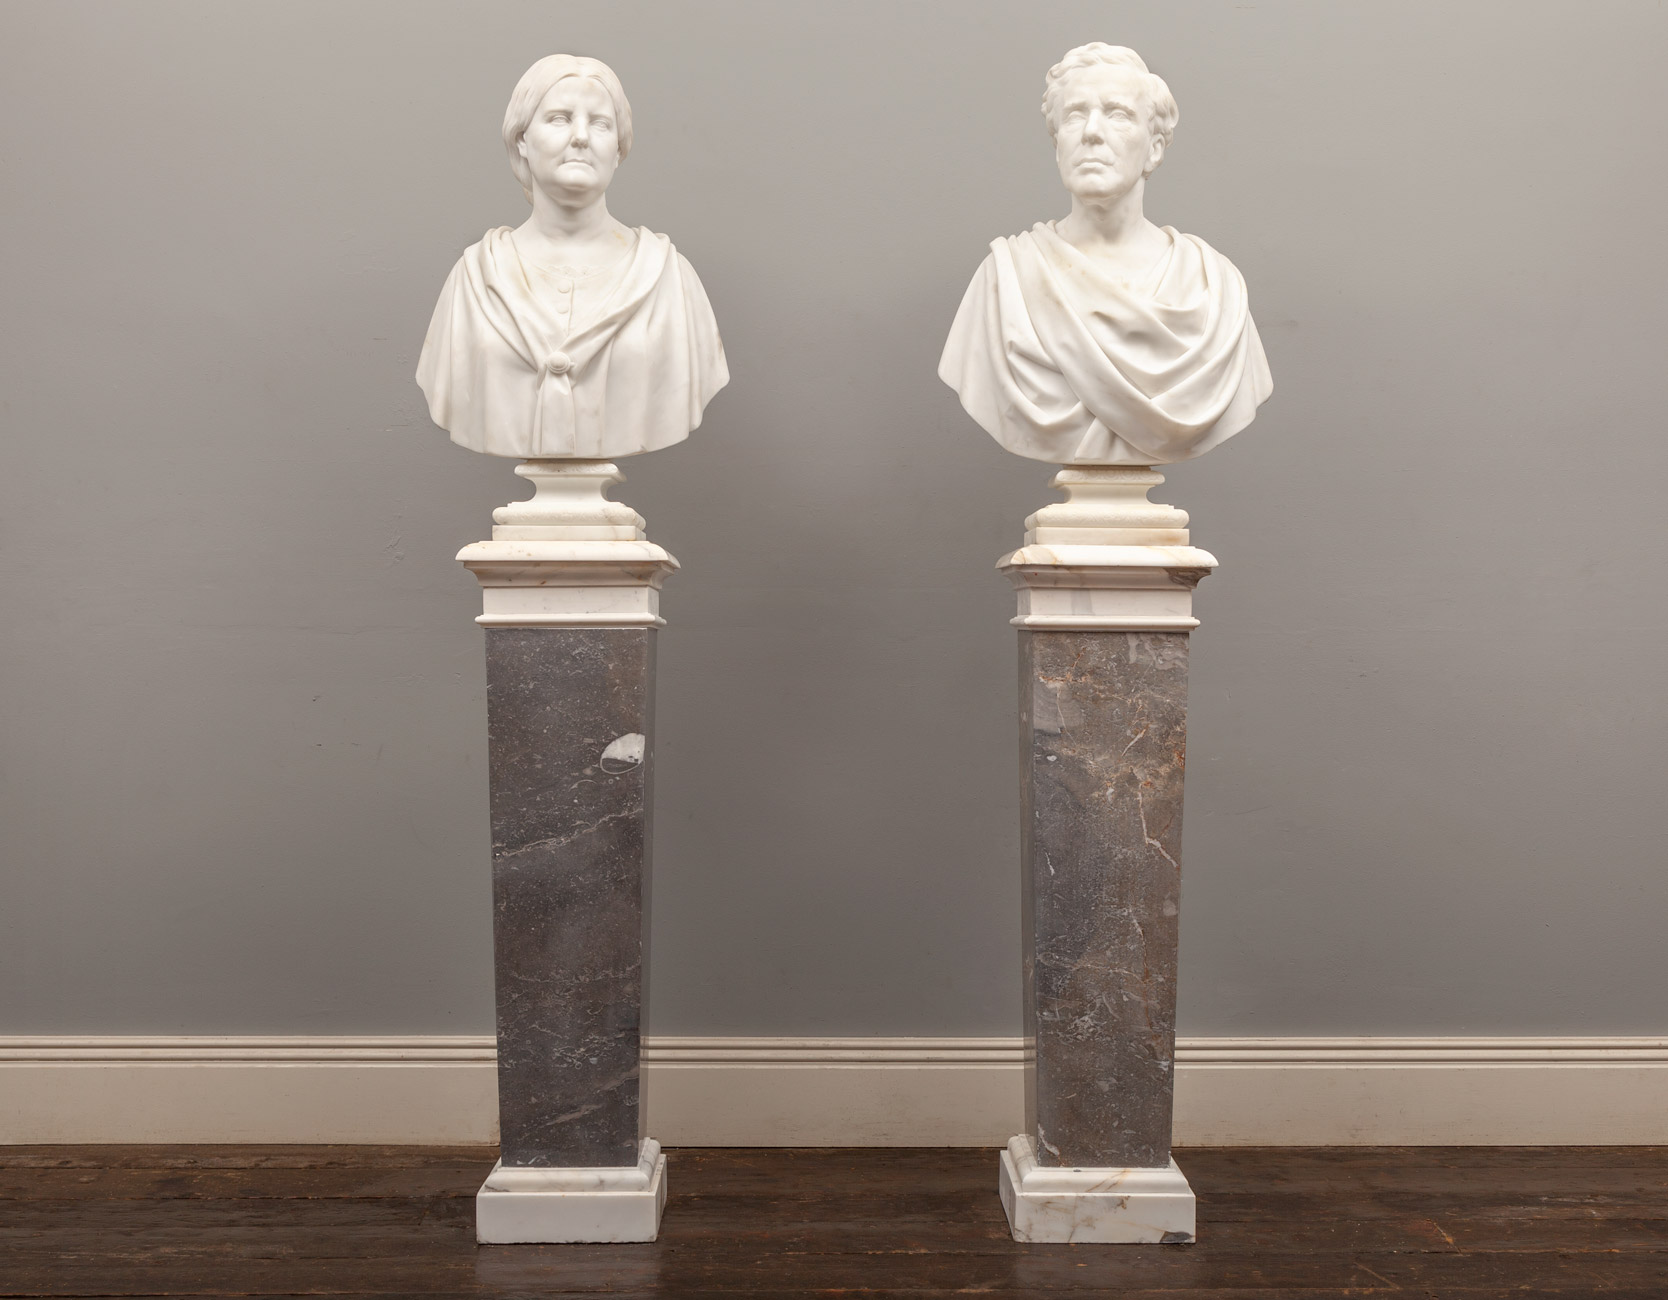 Pair of Busts – SC033